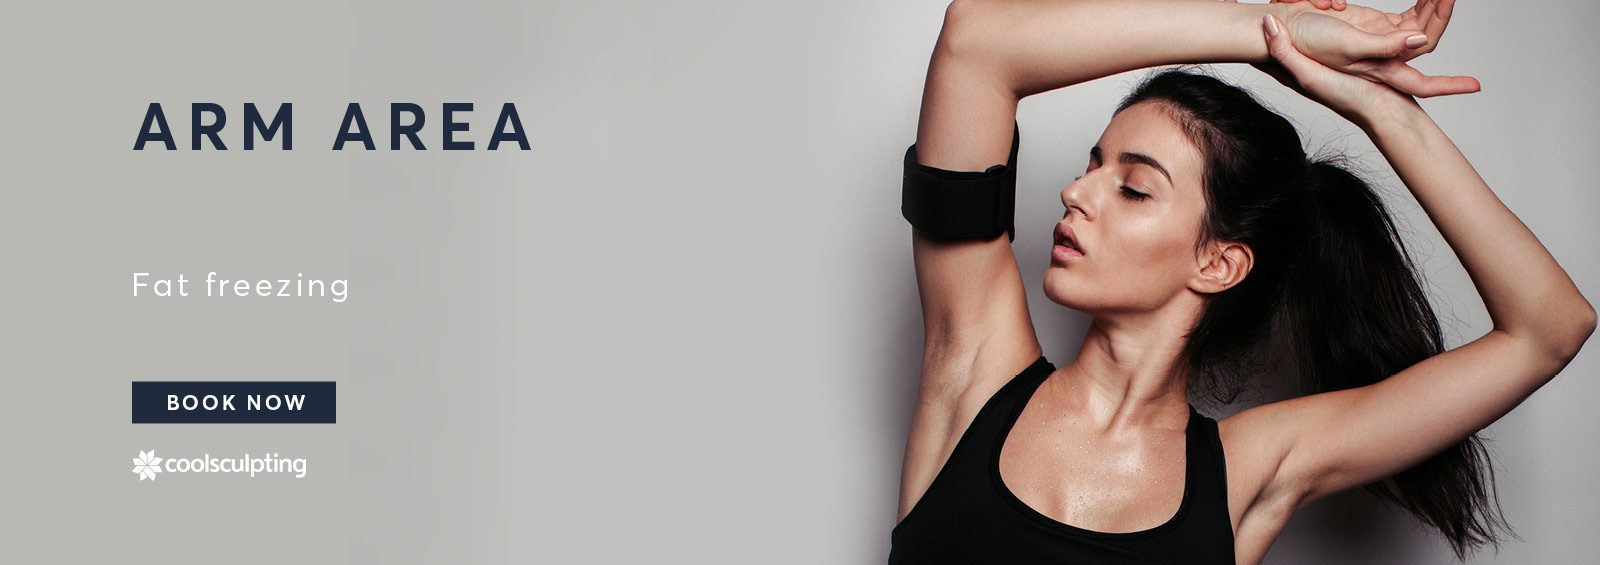 A banner of a lady in her gymwear stretching with her arm area for CoolSculpting